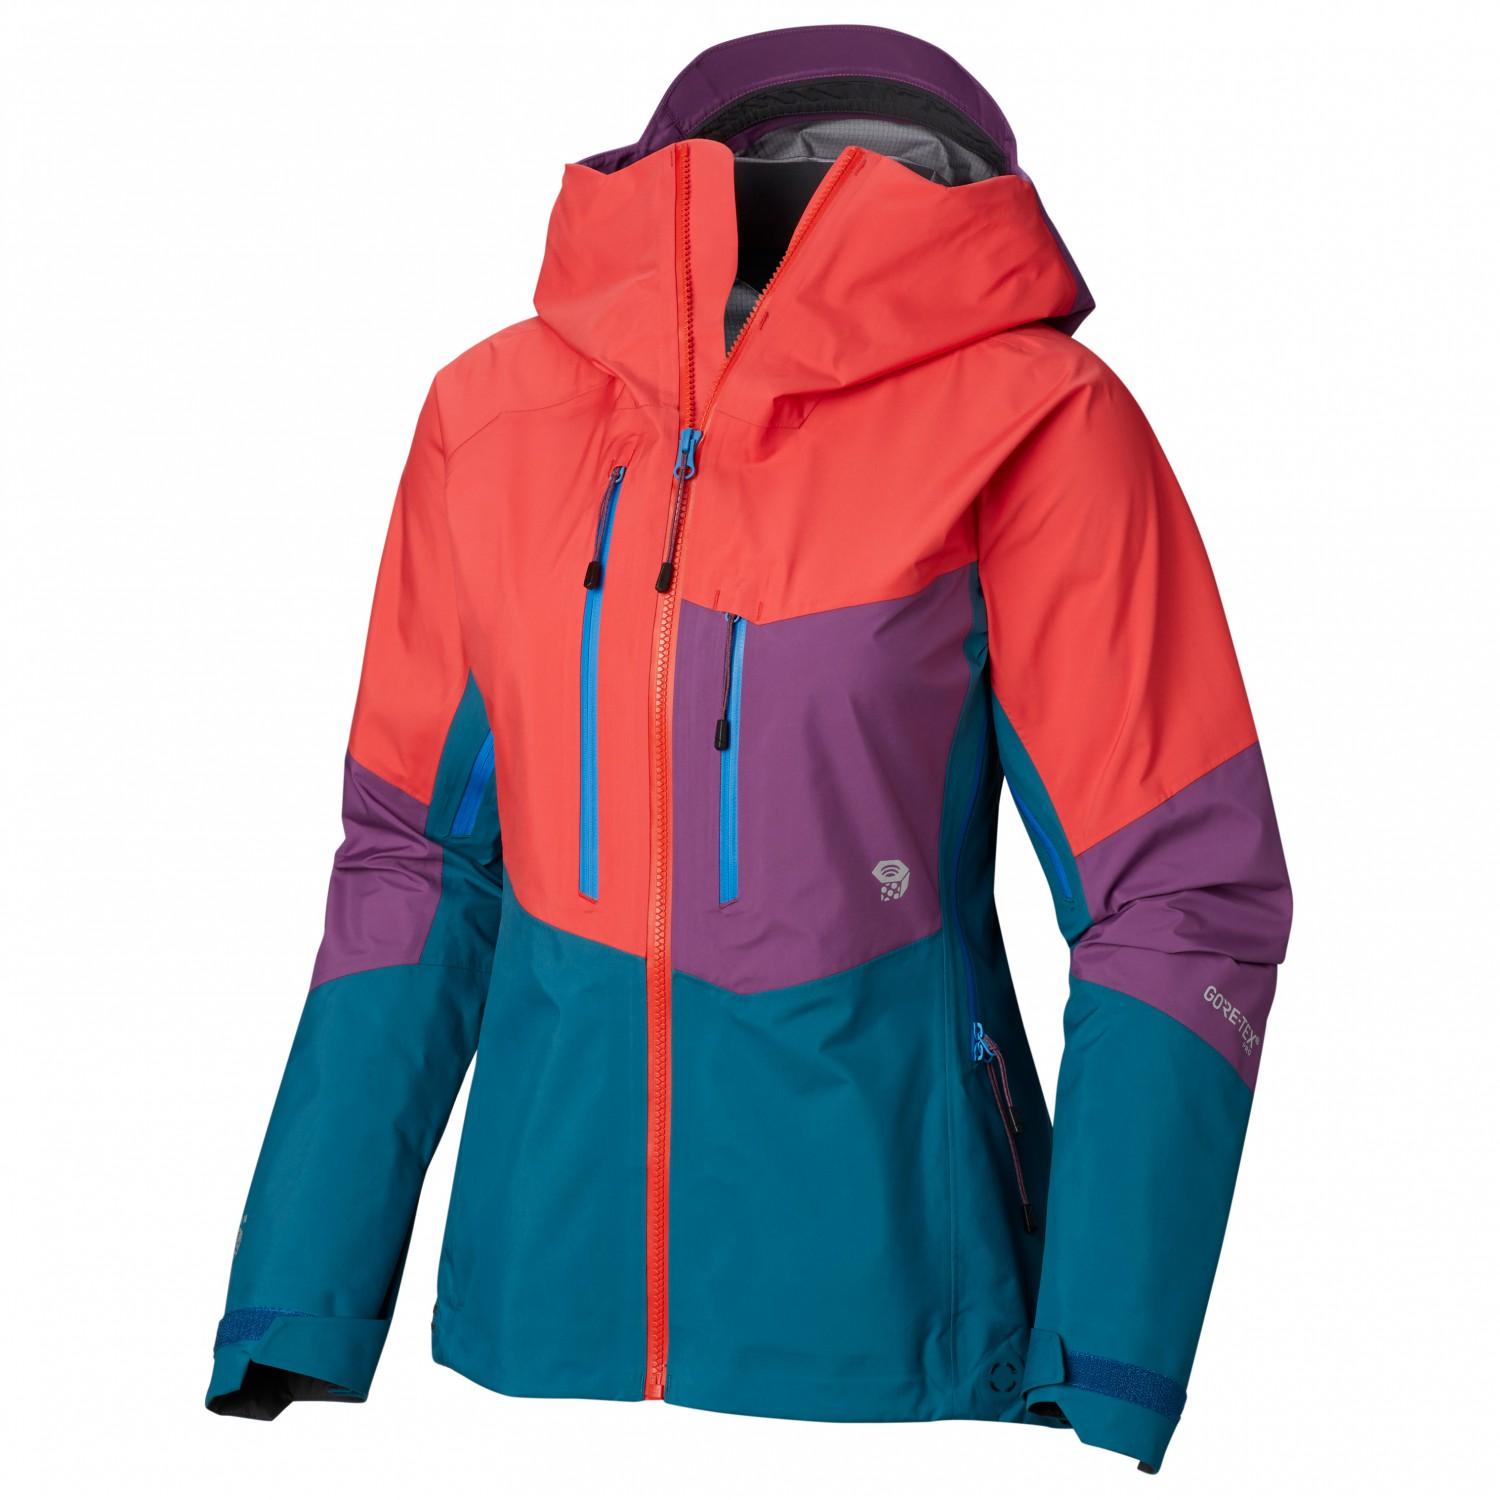 quality design cf58f 12430 Mountain Hardwear - Women's Exposure/2 Gore-Tex Pro Jacket - Regenjacke -  Fiery Red | S